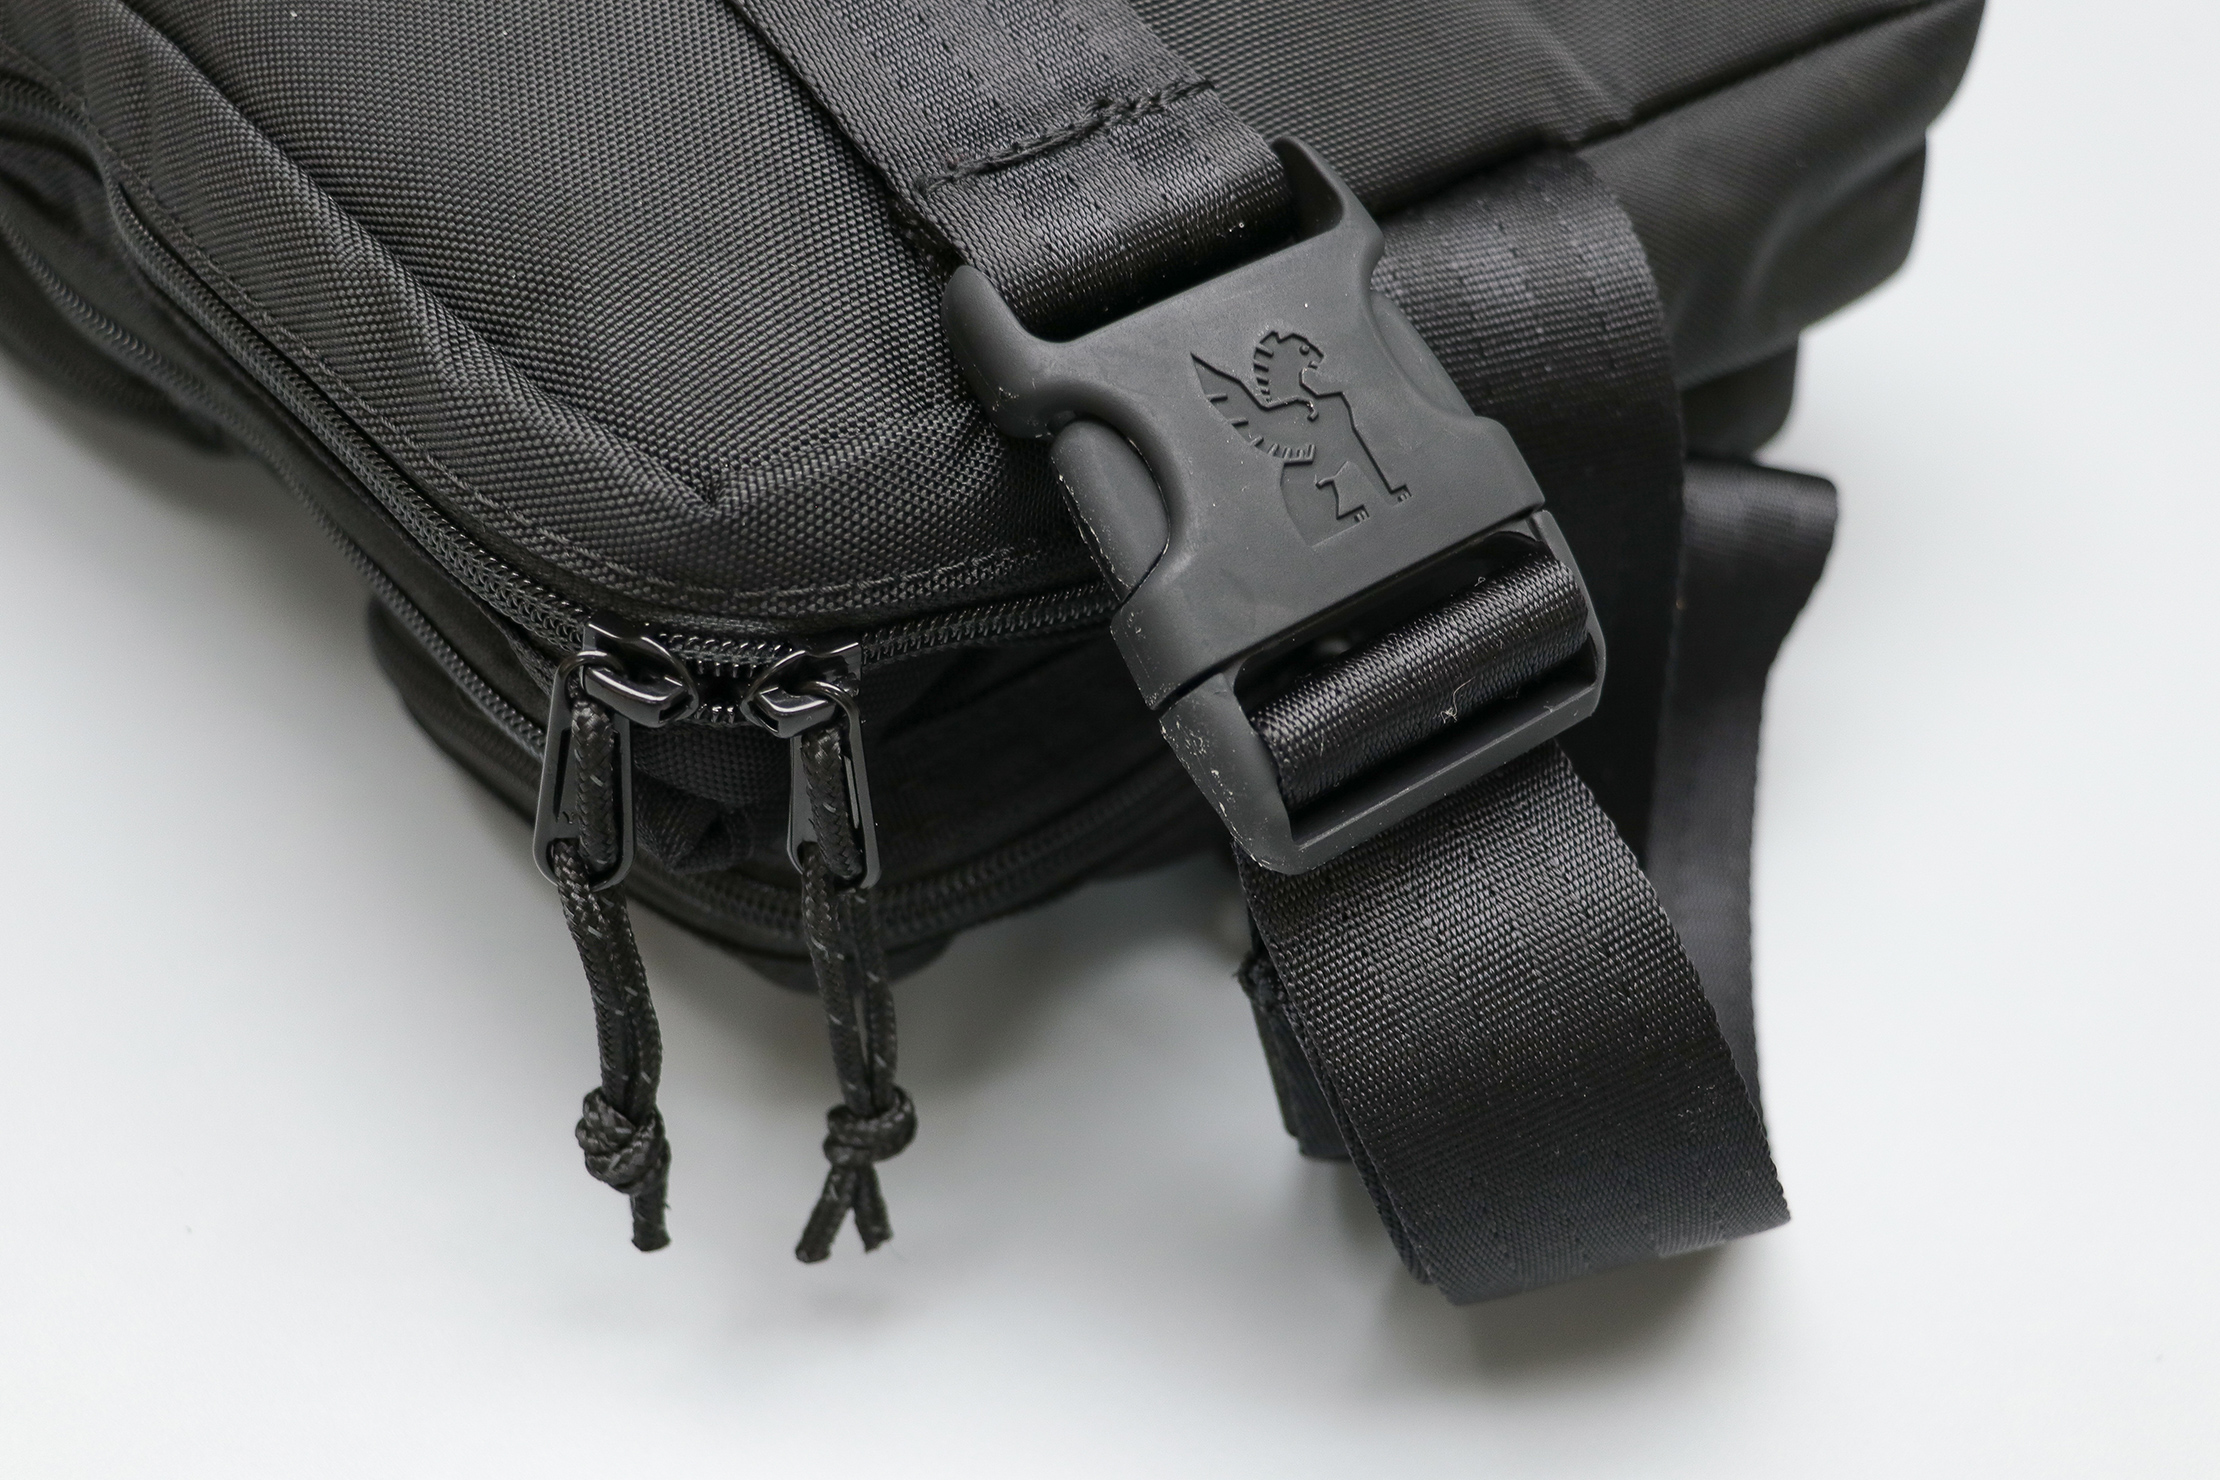 Chrome Industries MXD Link Sling Zippers and Hardware